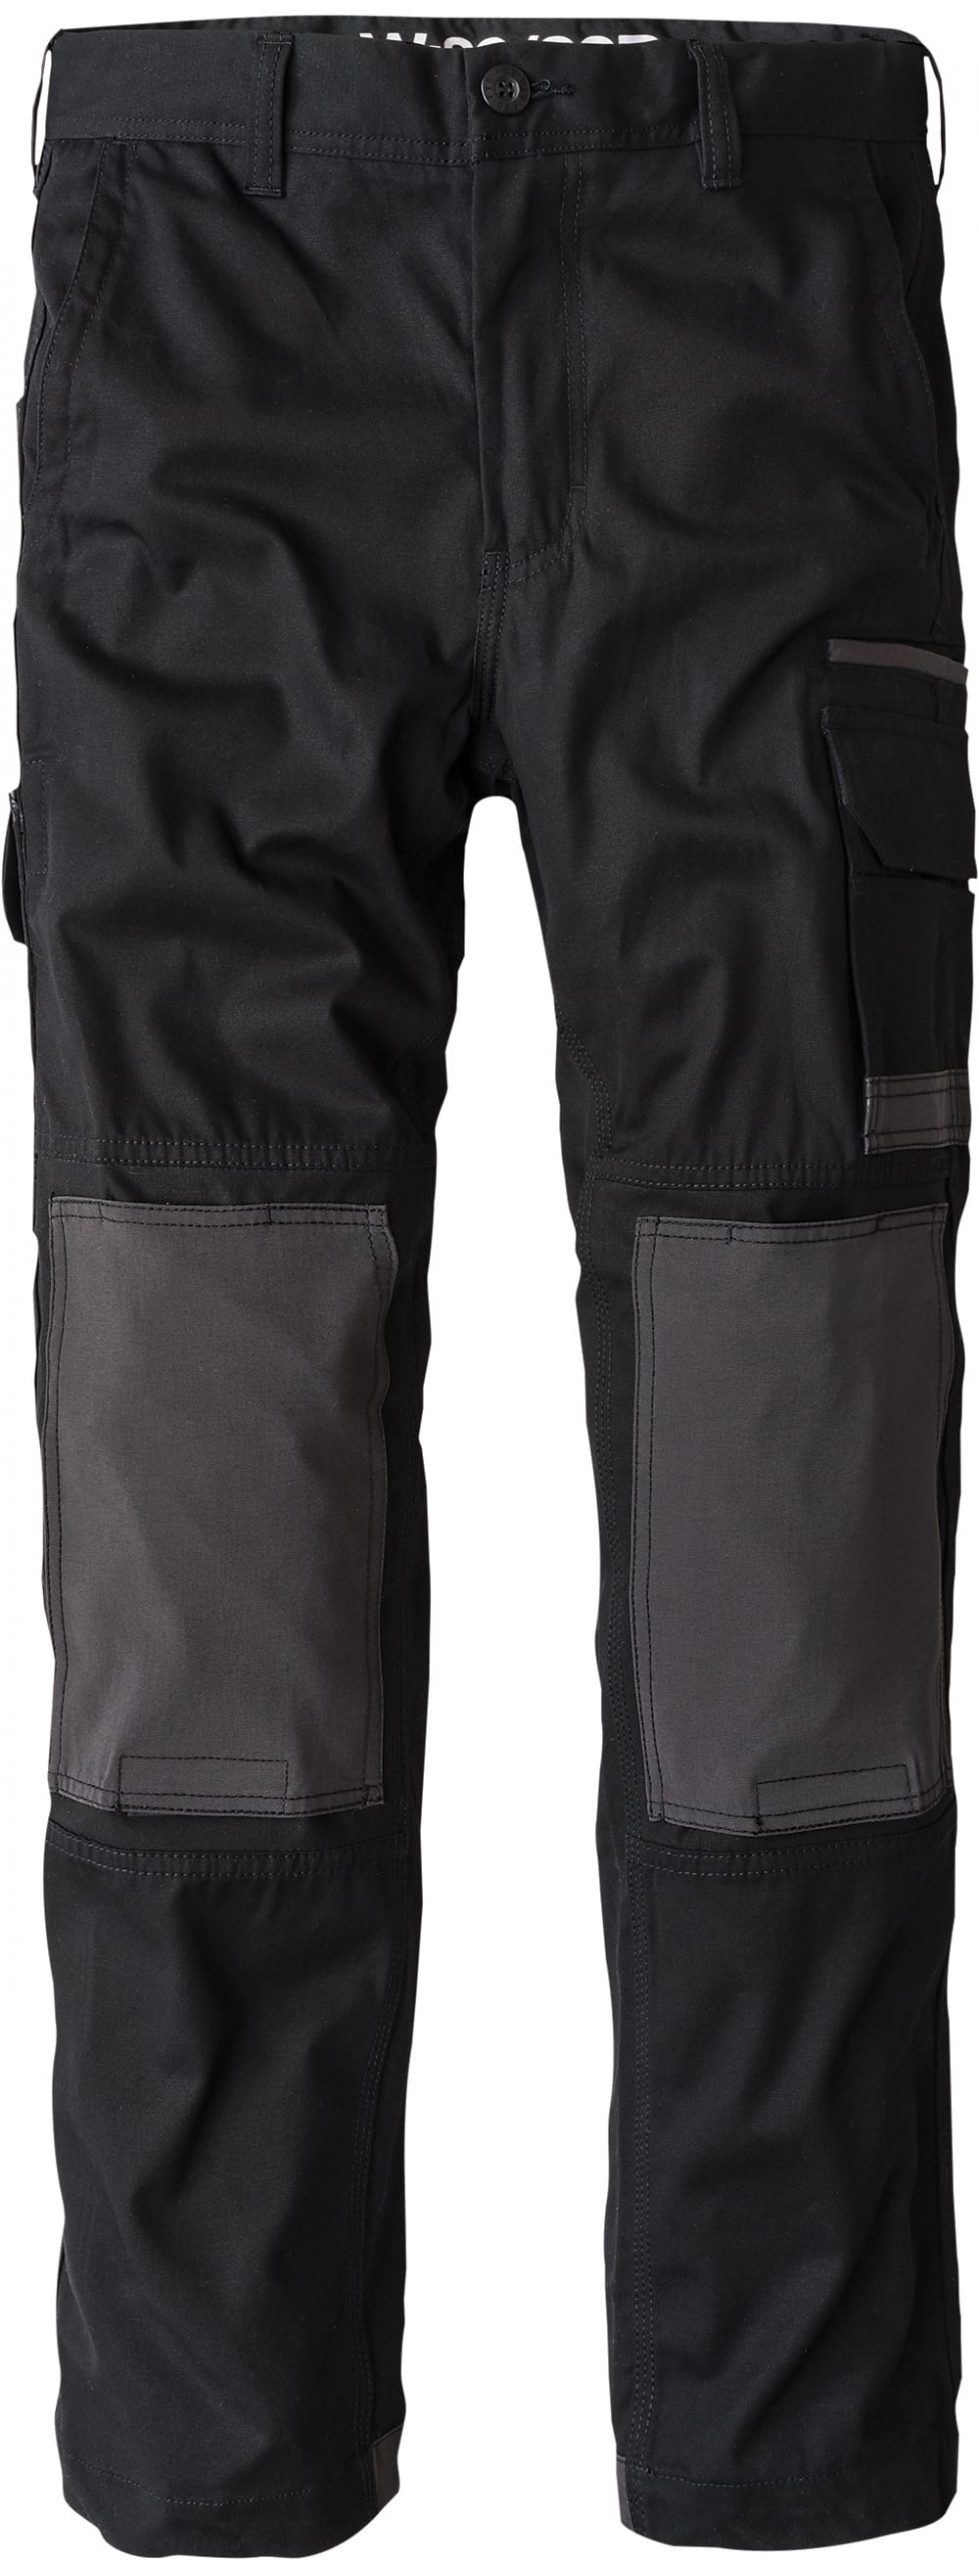 WP-1 FXD Standard weight Cotton Drill Cargo Pants BLACK